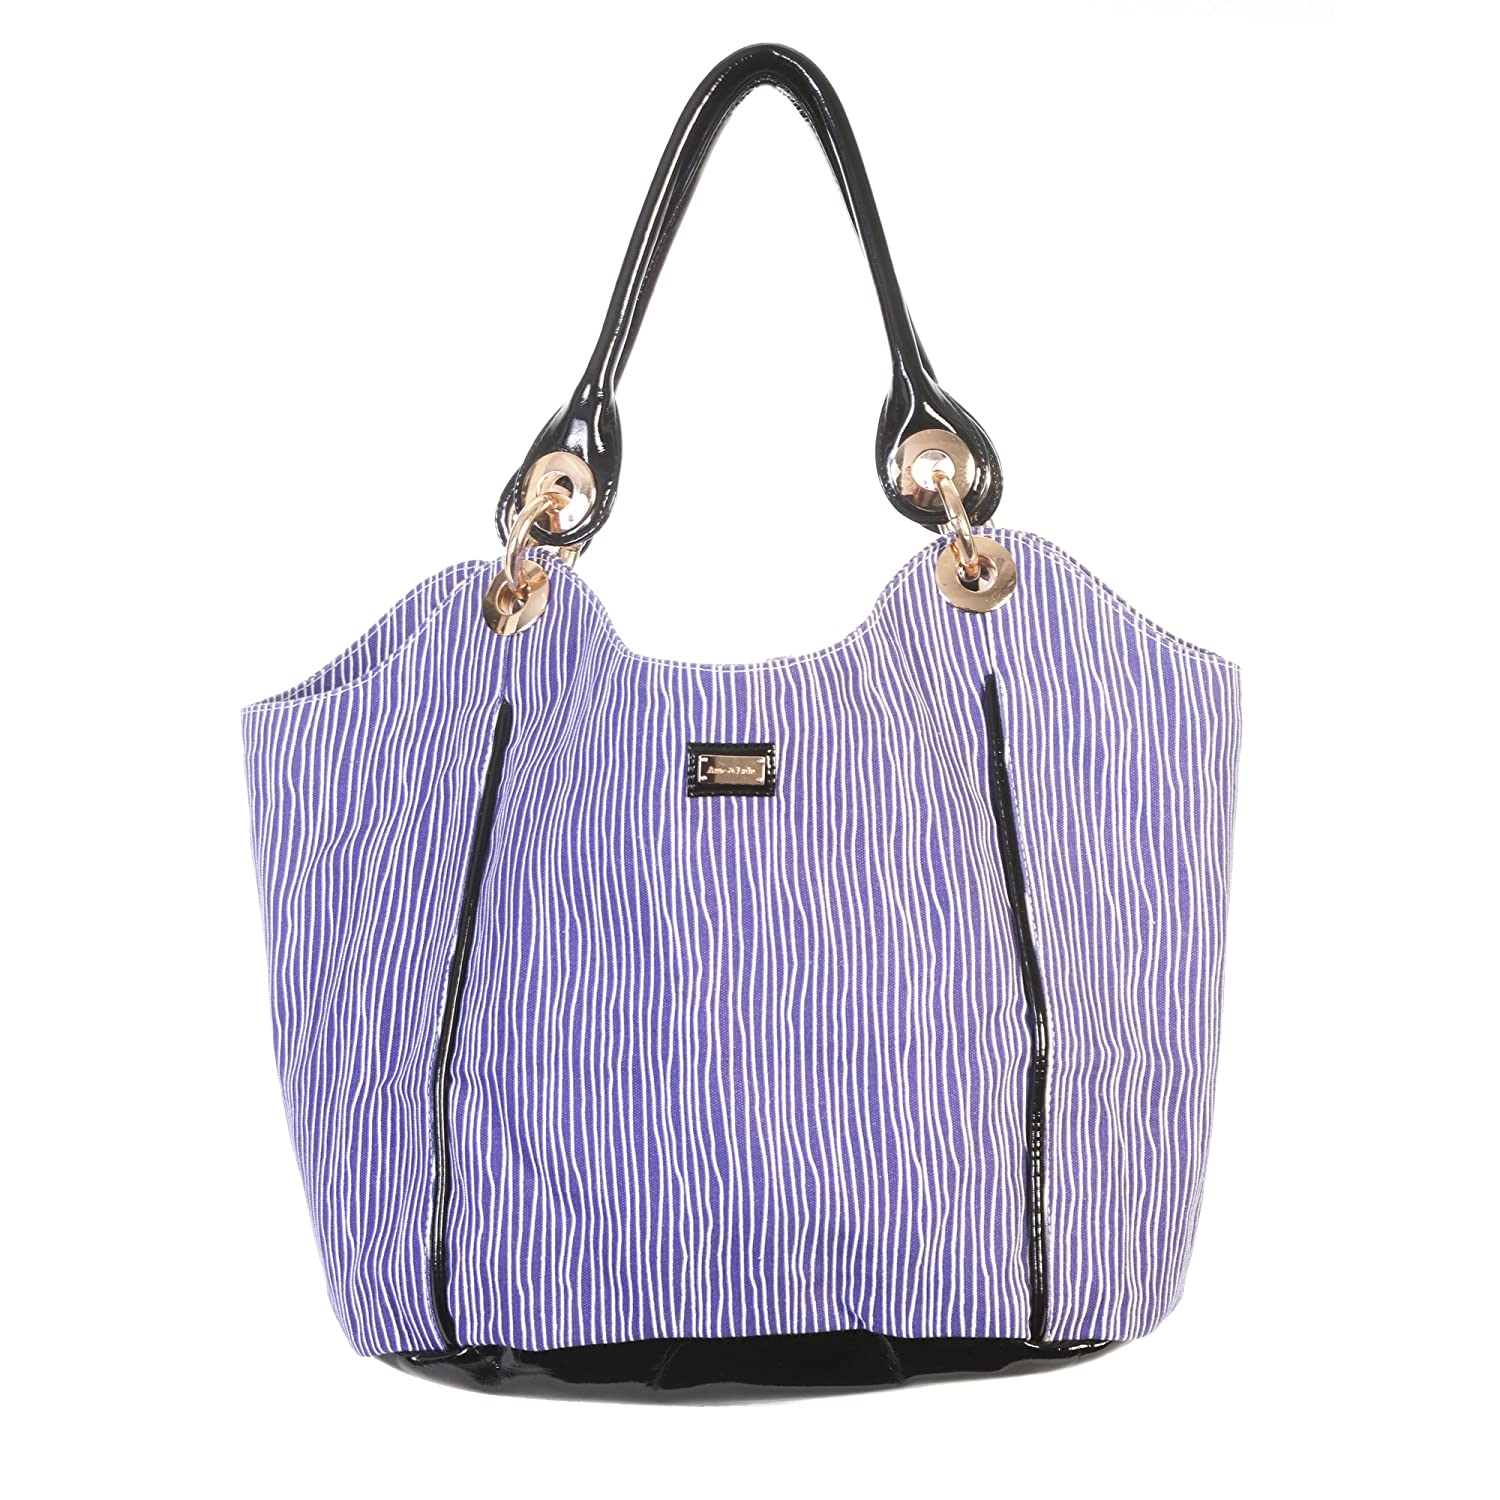 Ame &ルルday100メンズ25.5l Day Tote B00KZVJREY One Size|やなぎ(Willow) やなぎ(Willow) One Size